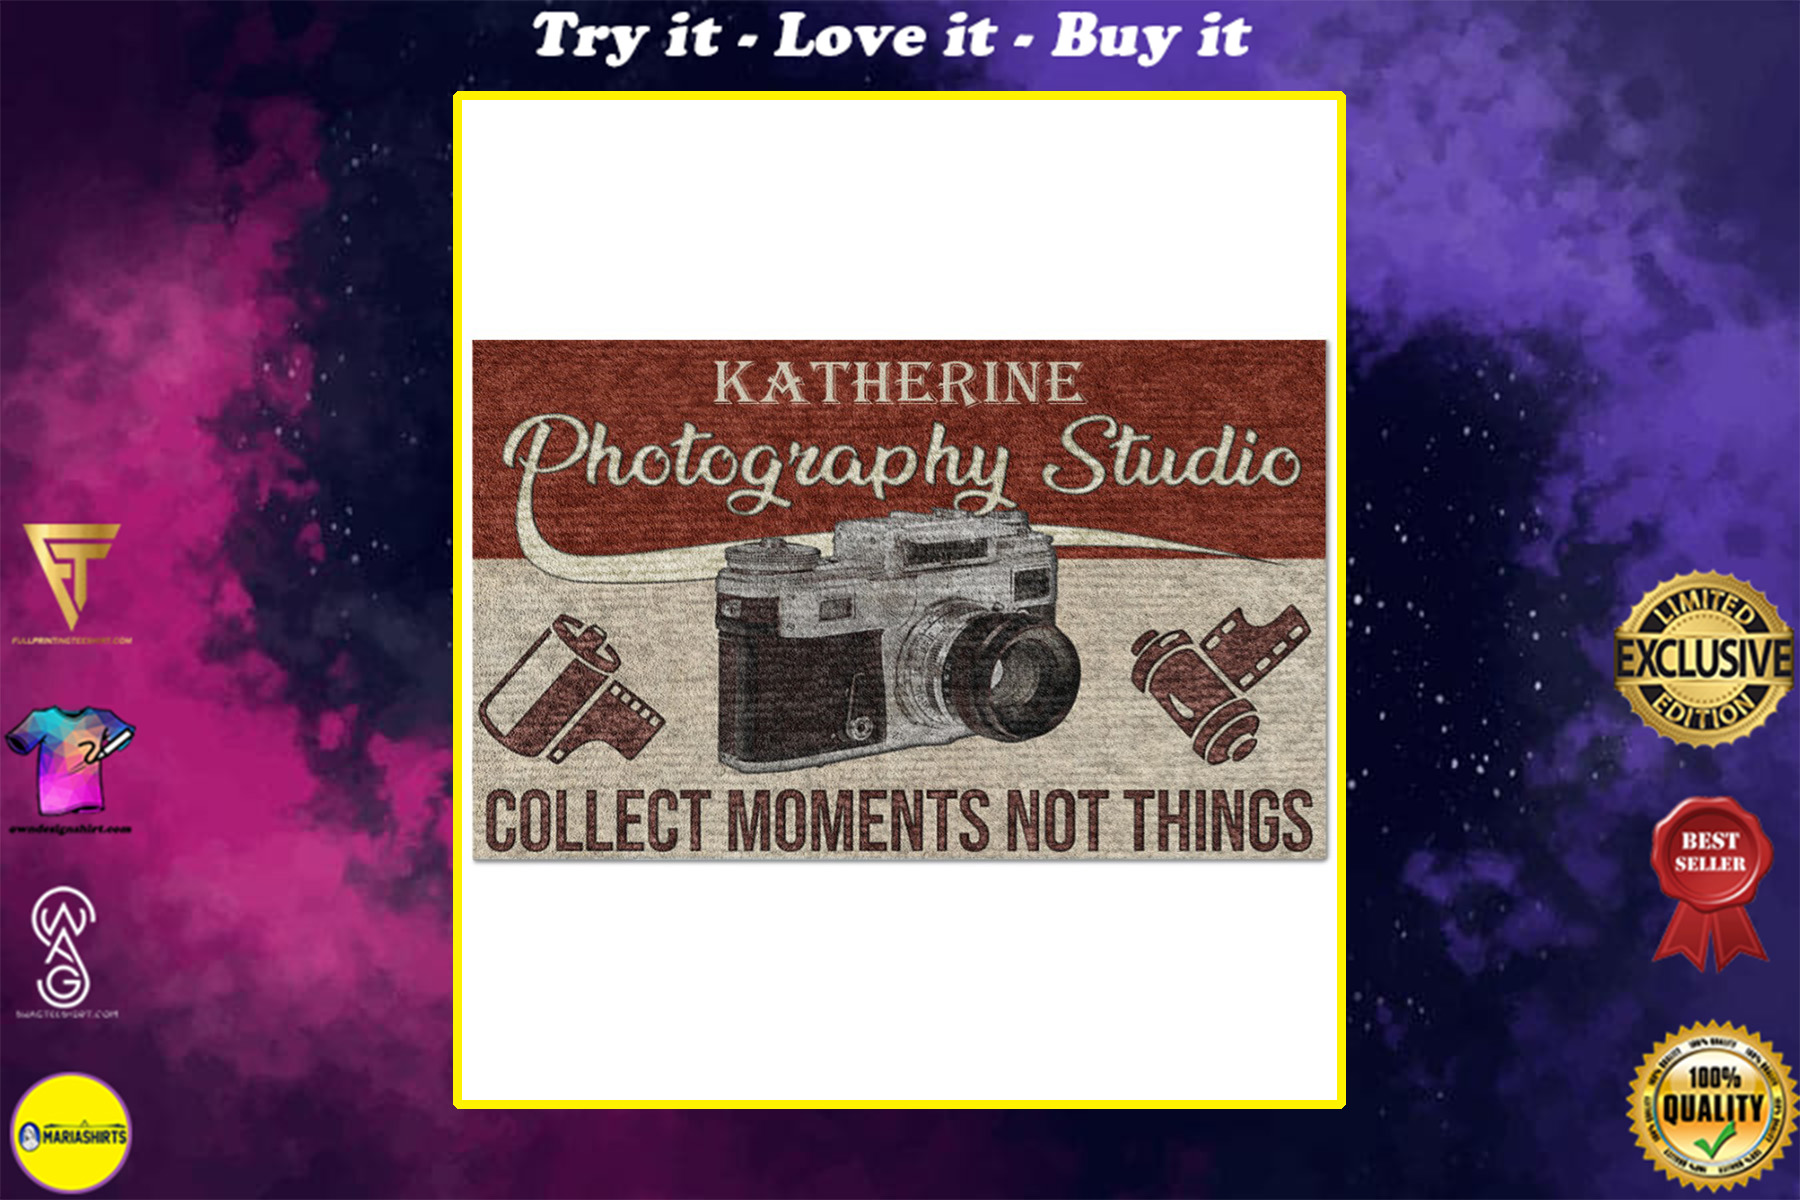 personalized photography studio collect moments not things full printing doormat